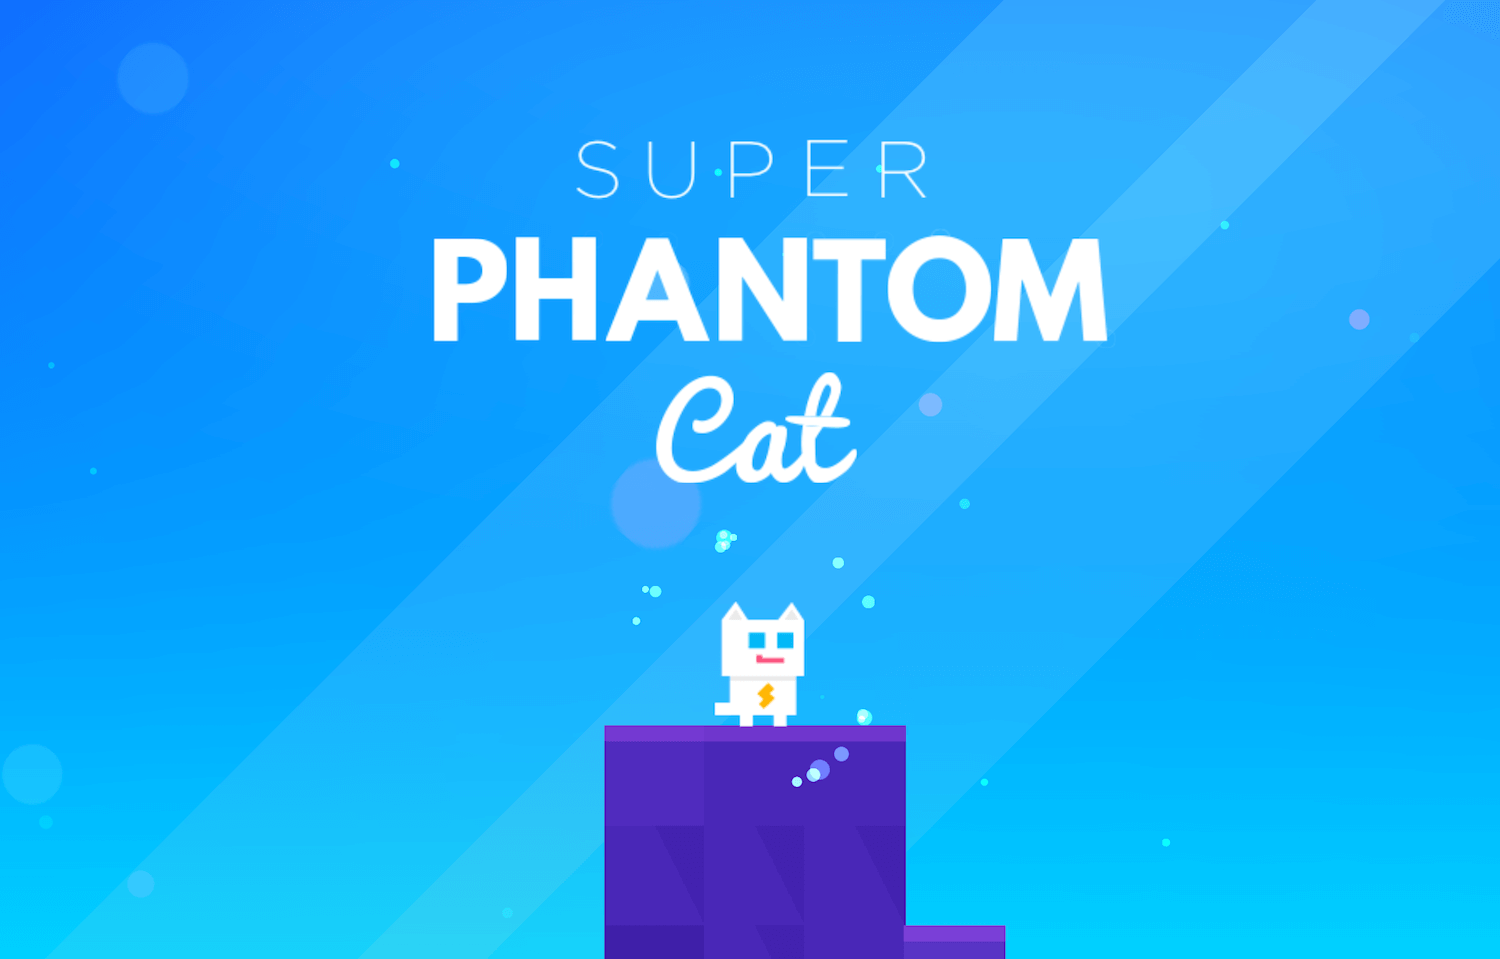 super_phantom_cat_1